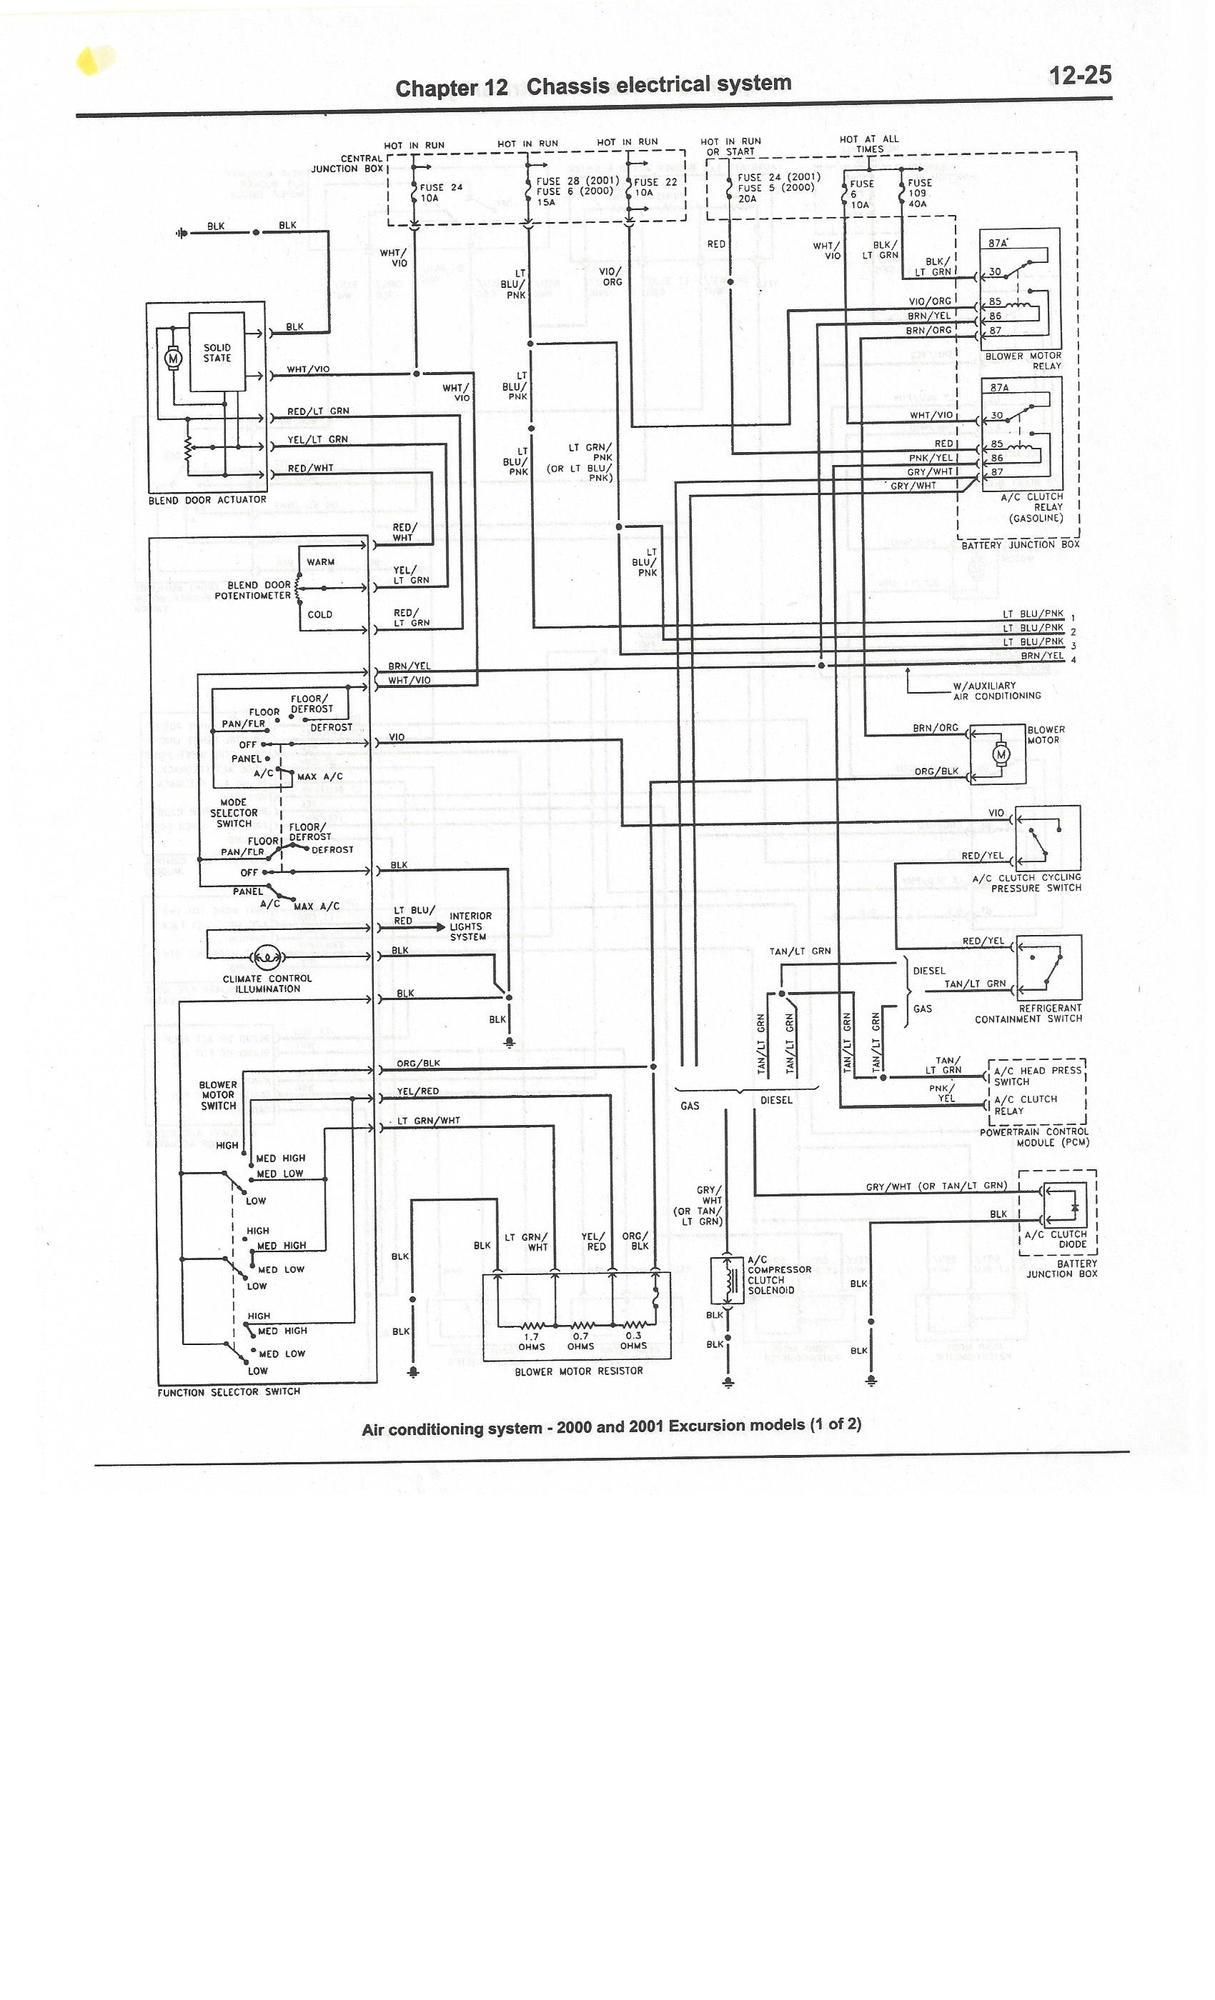 hight resolution of air conditioning 00 01 br 1 of 2